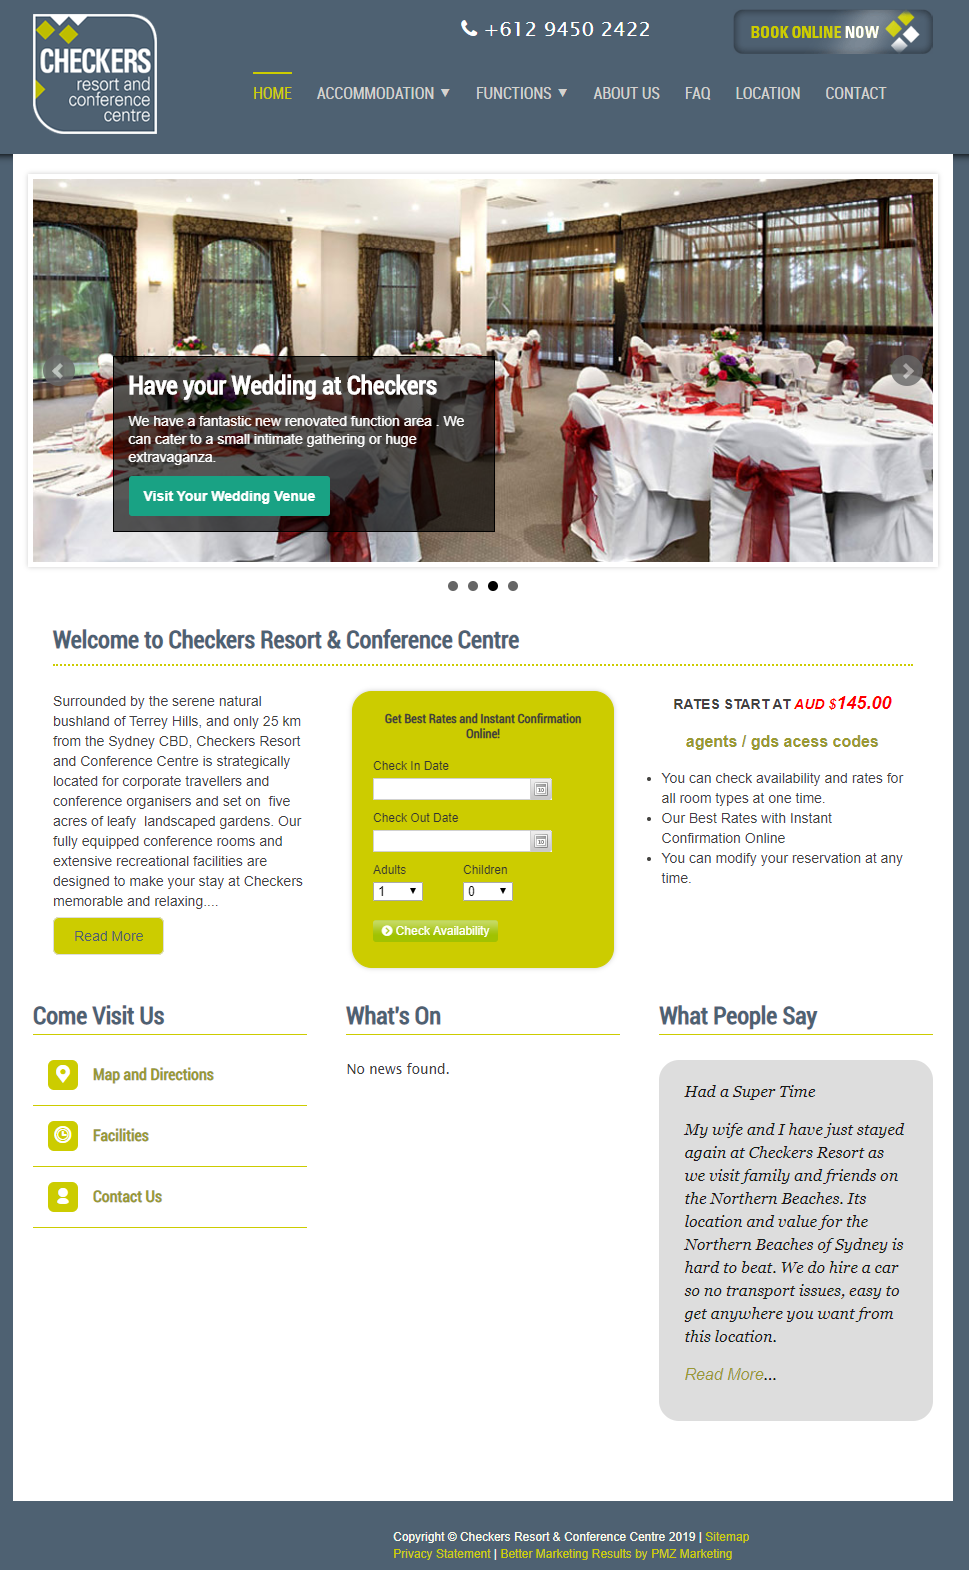 Checkers Resort and Conference Centre :: PMZ Marketing Client